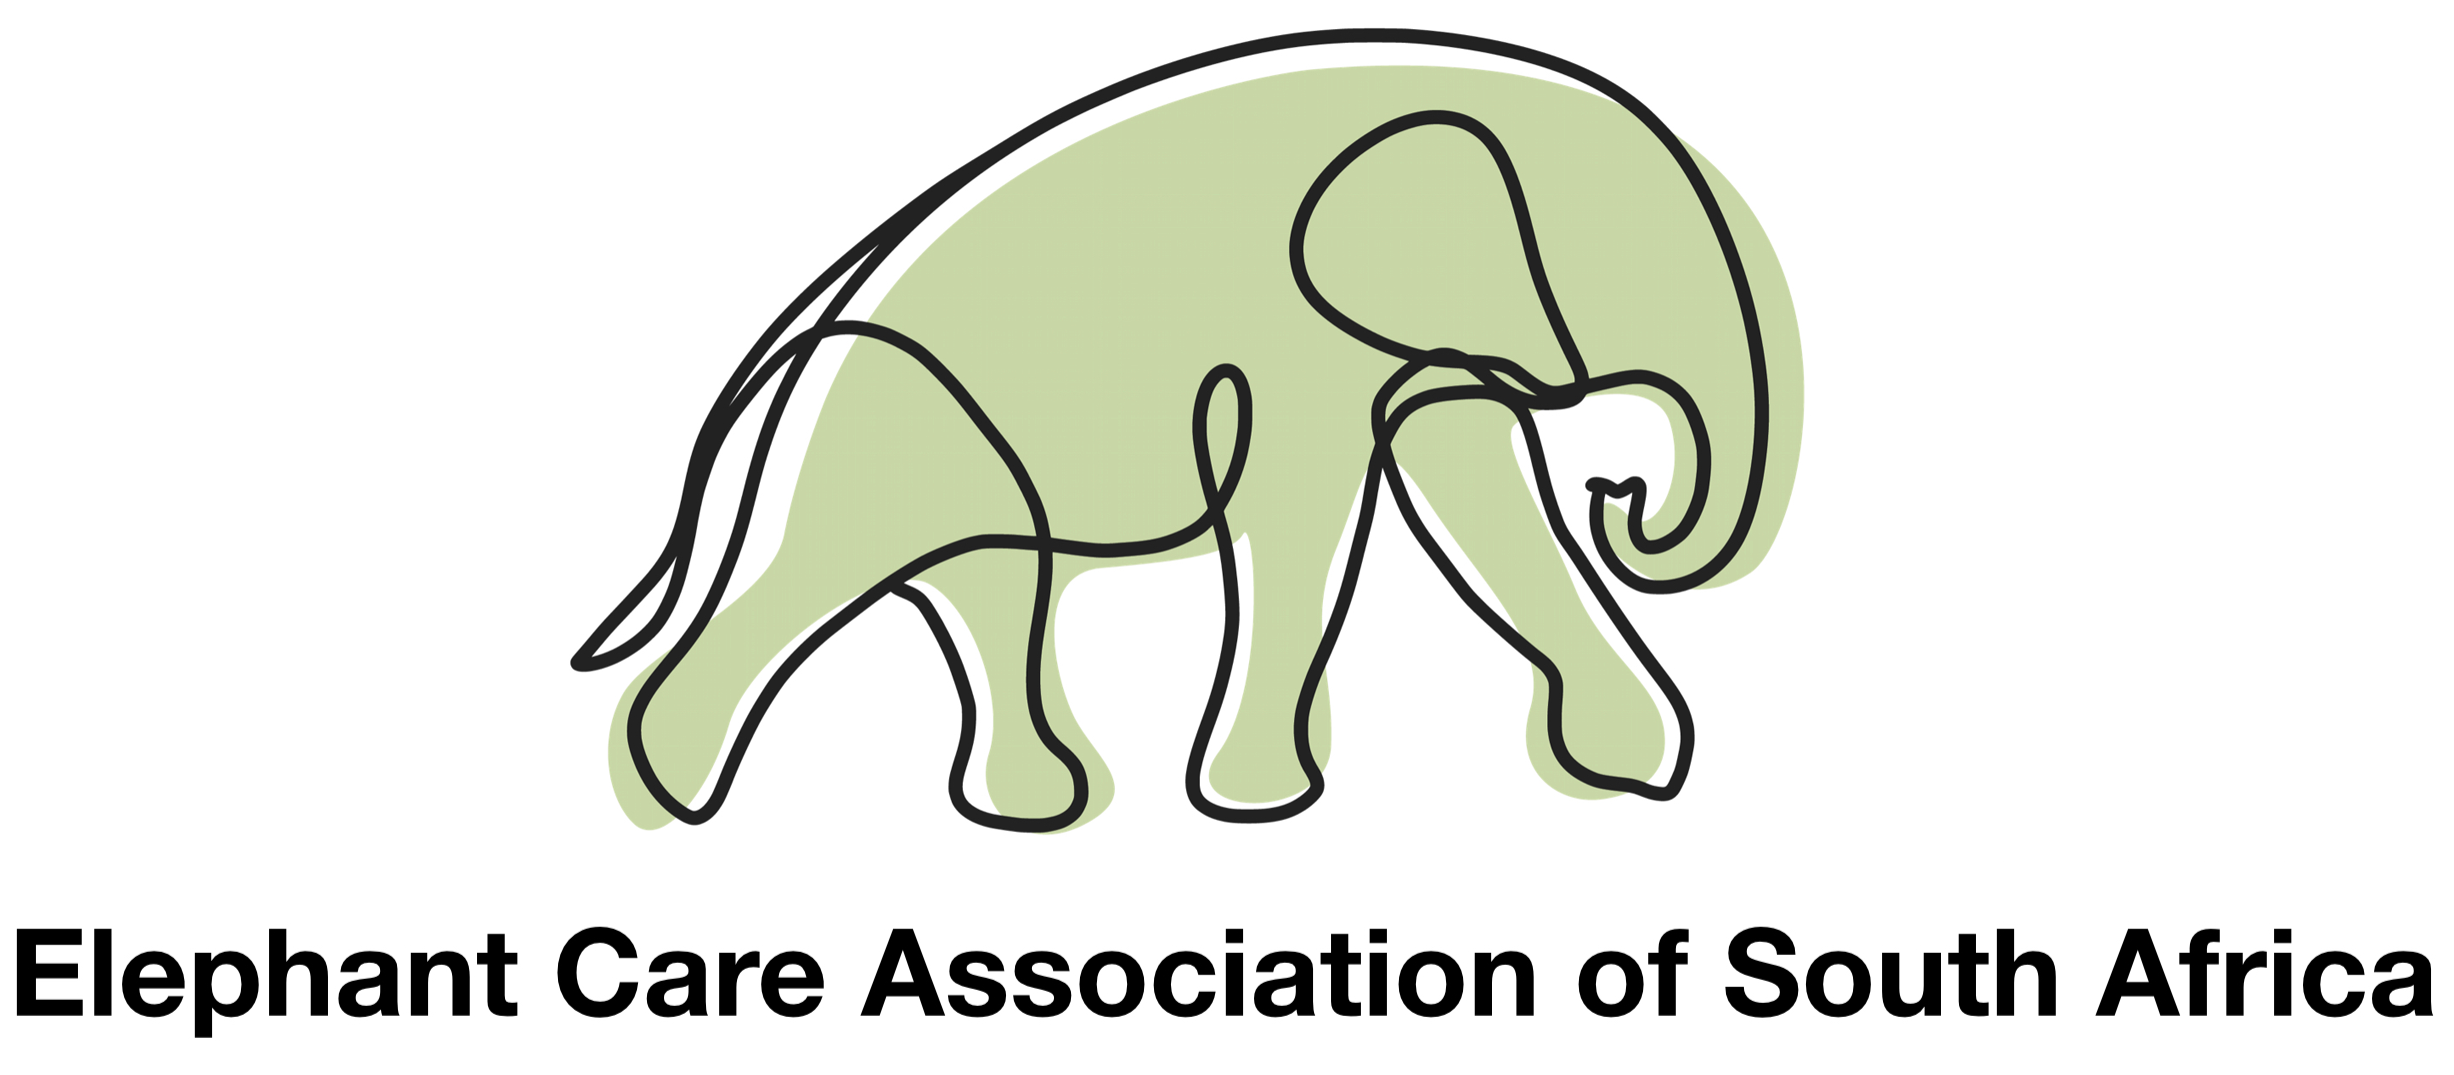 Elephant Care Association of South Africa